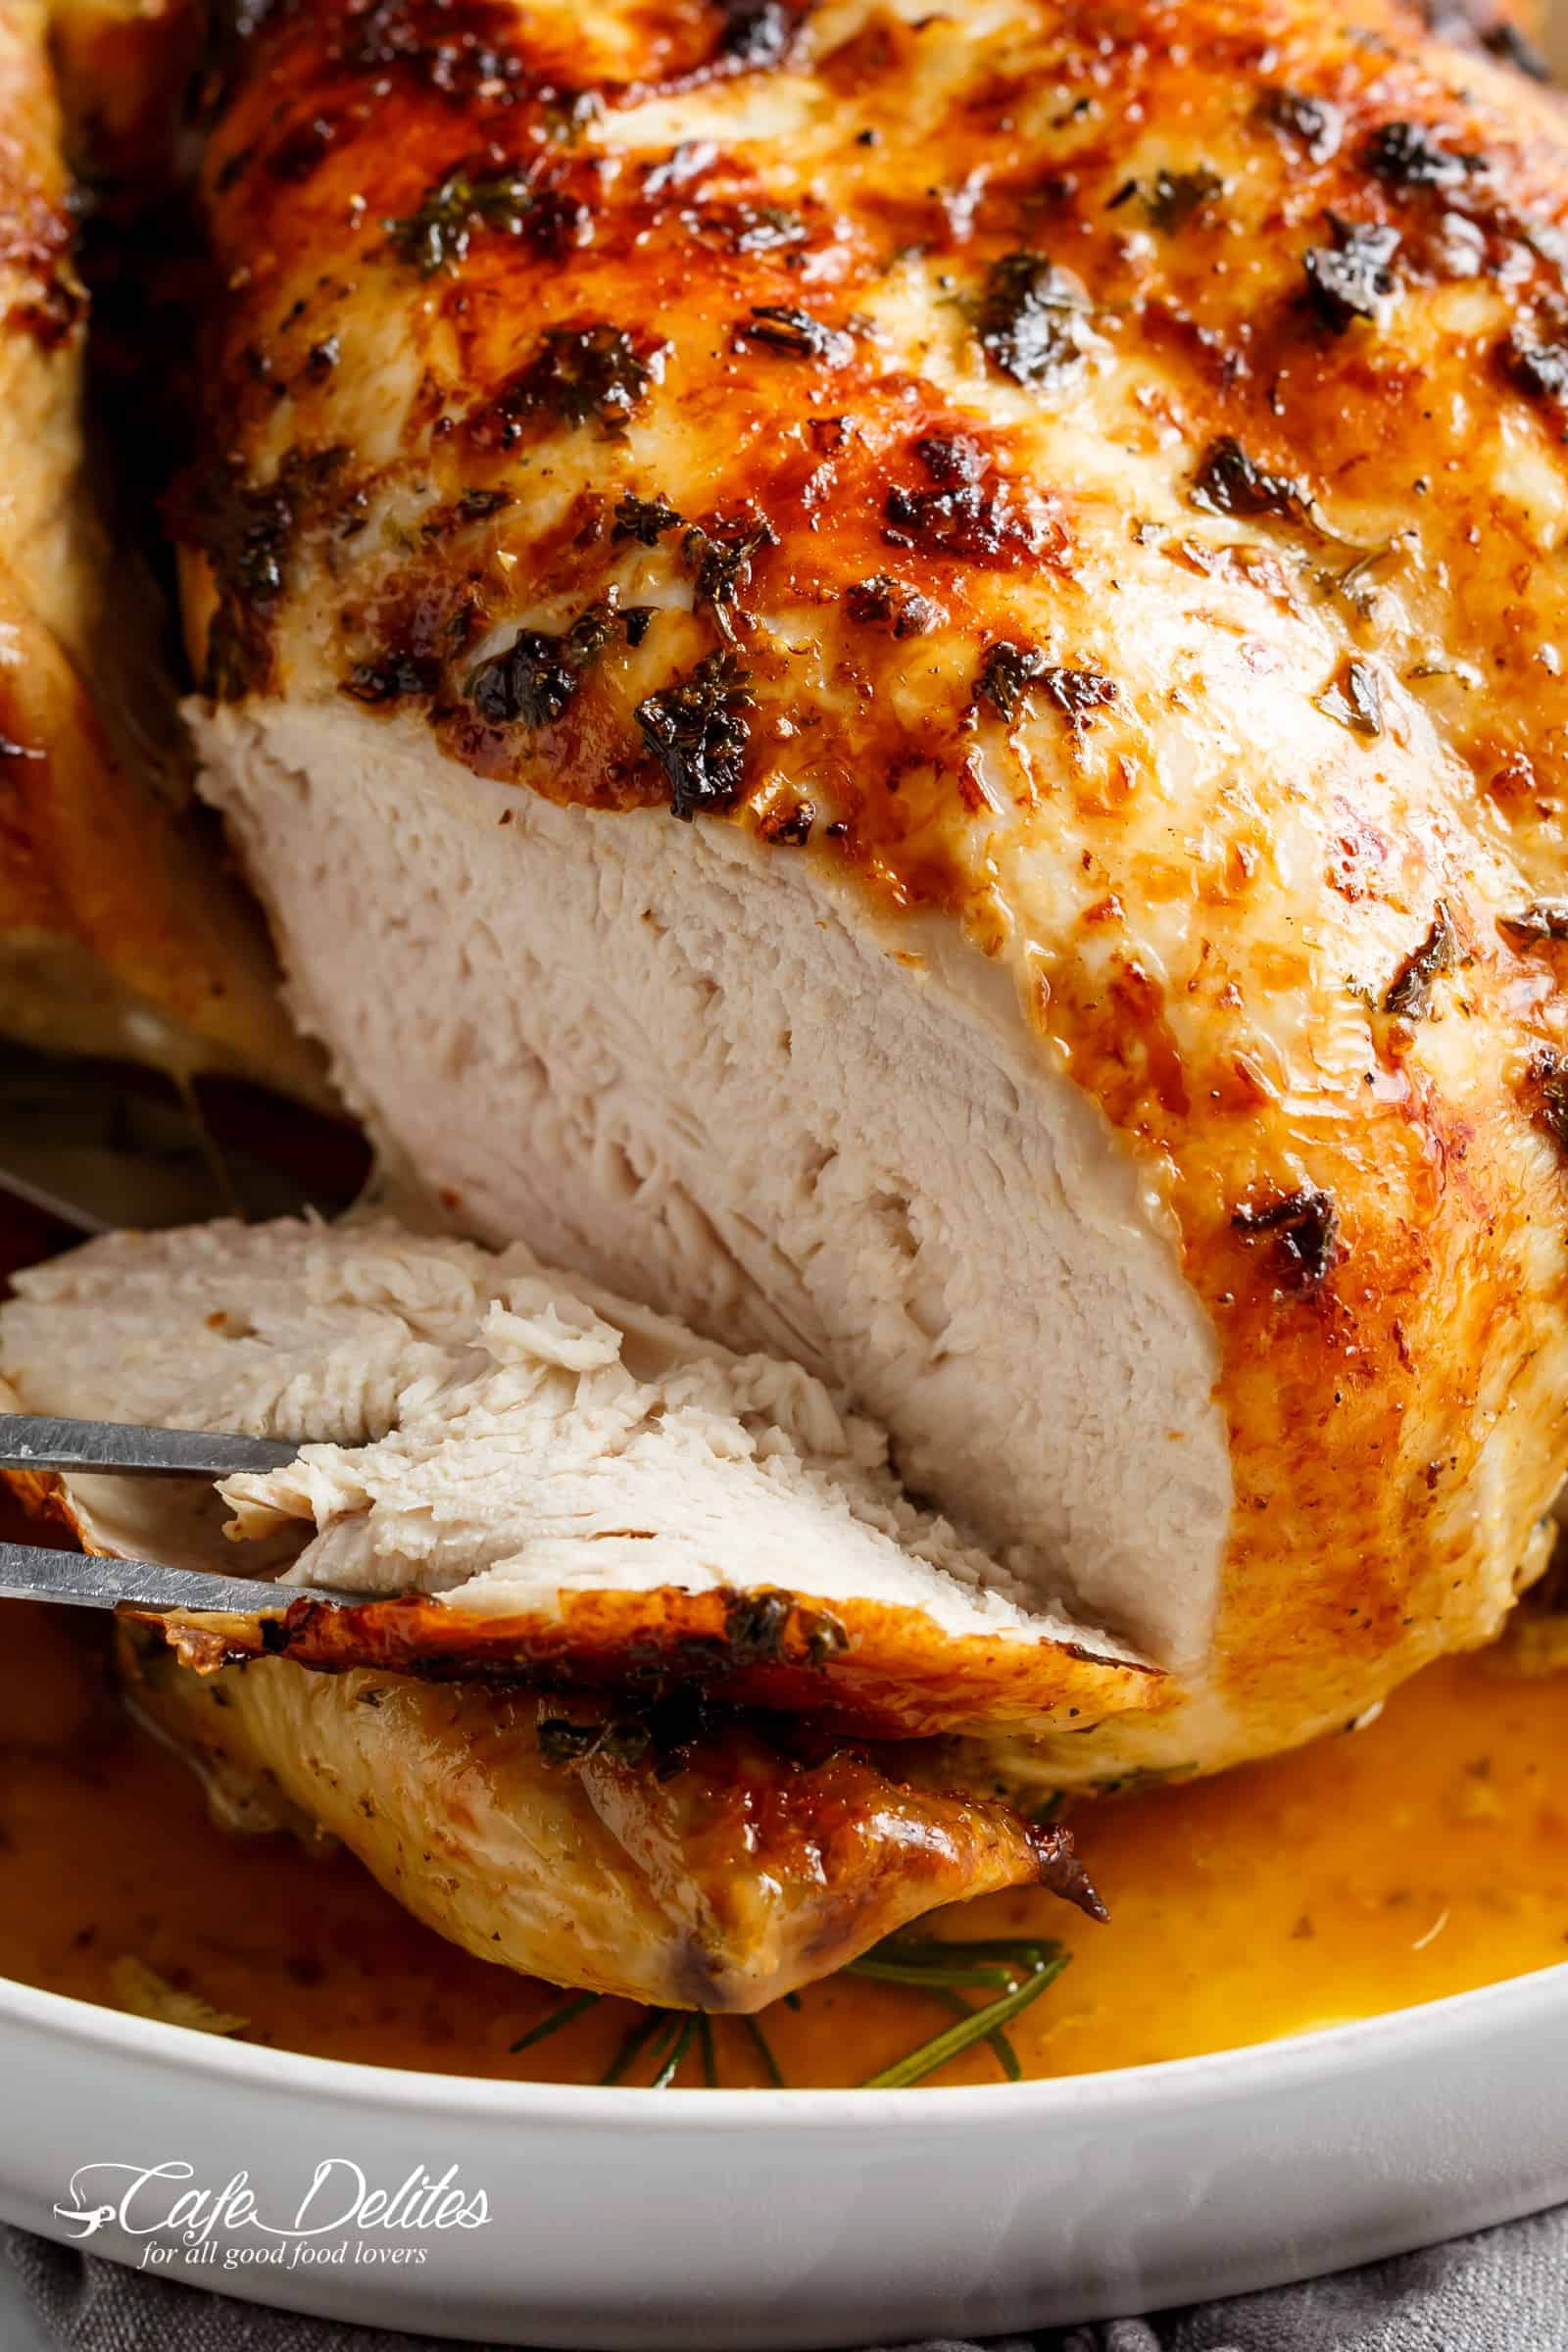 How to keep whole chicken moist when baking